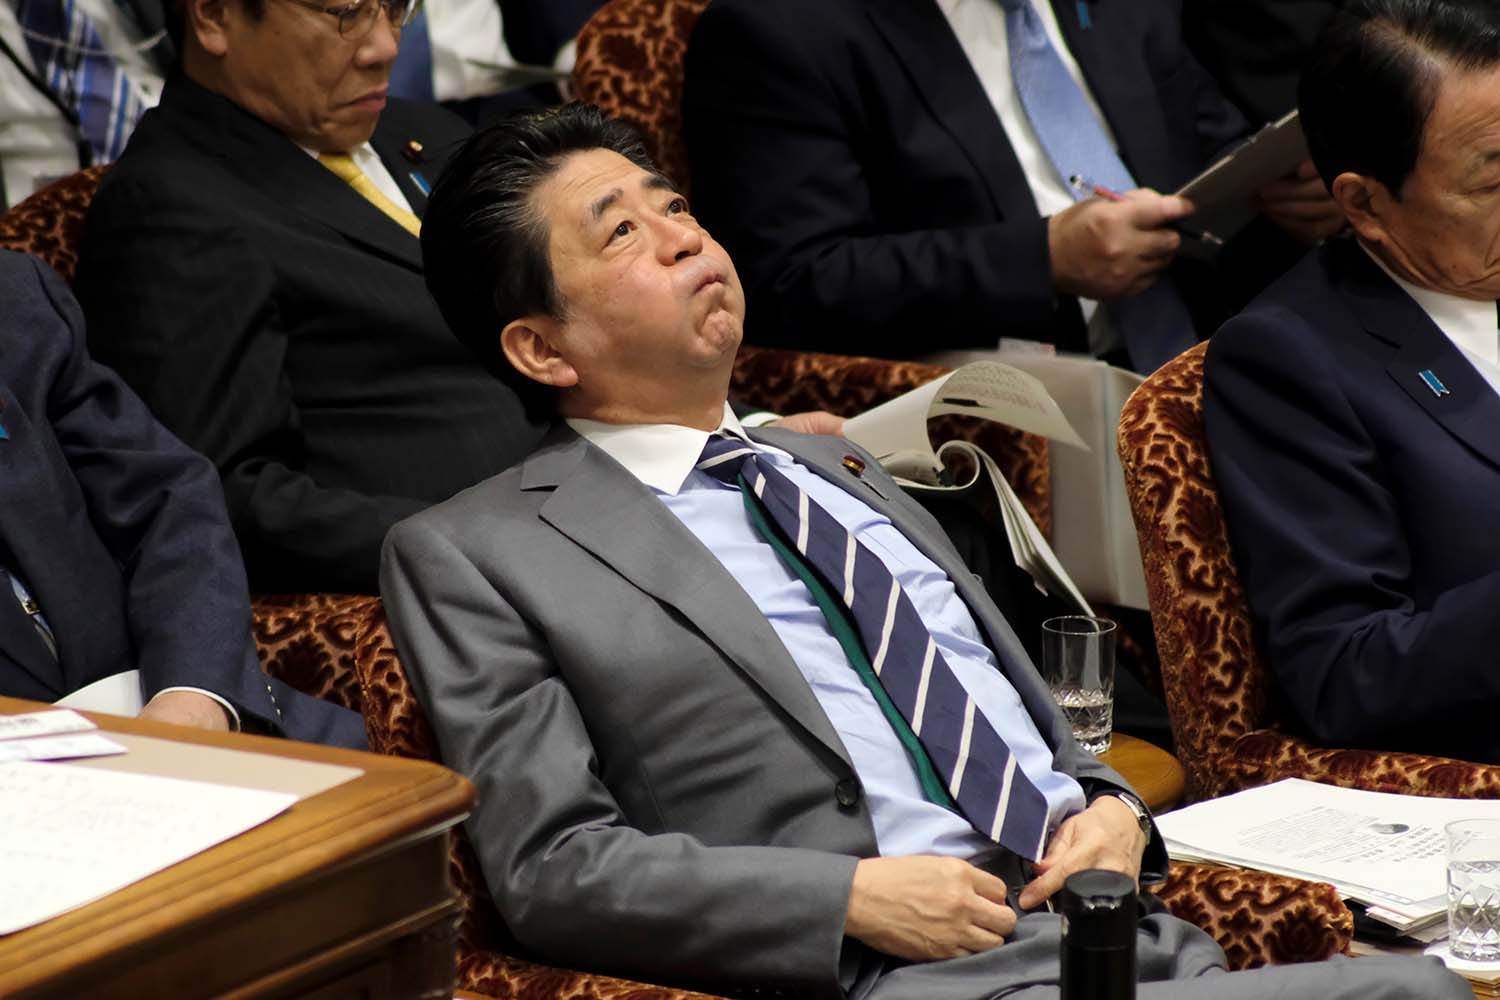 Japan's Prime Minister Shinzo Abe reacts during a budget committee session of the upper house of parliament on Jan. 30. KAZUHIRO NOGI/AFP via Getty Images